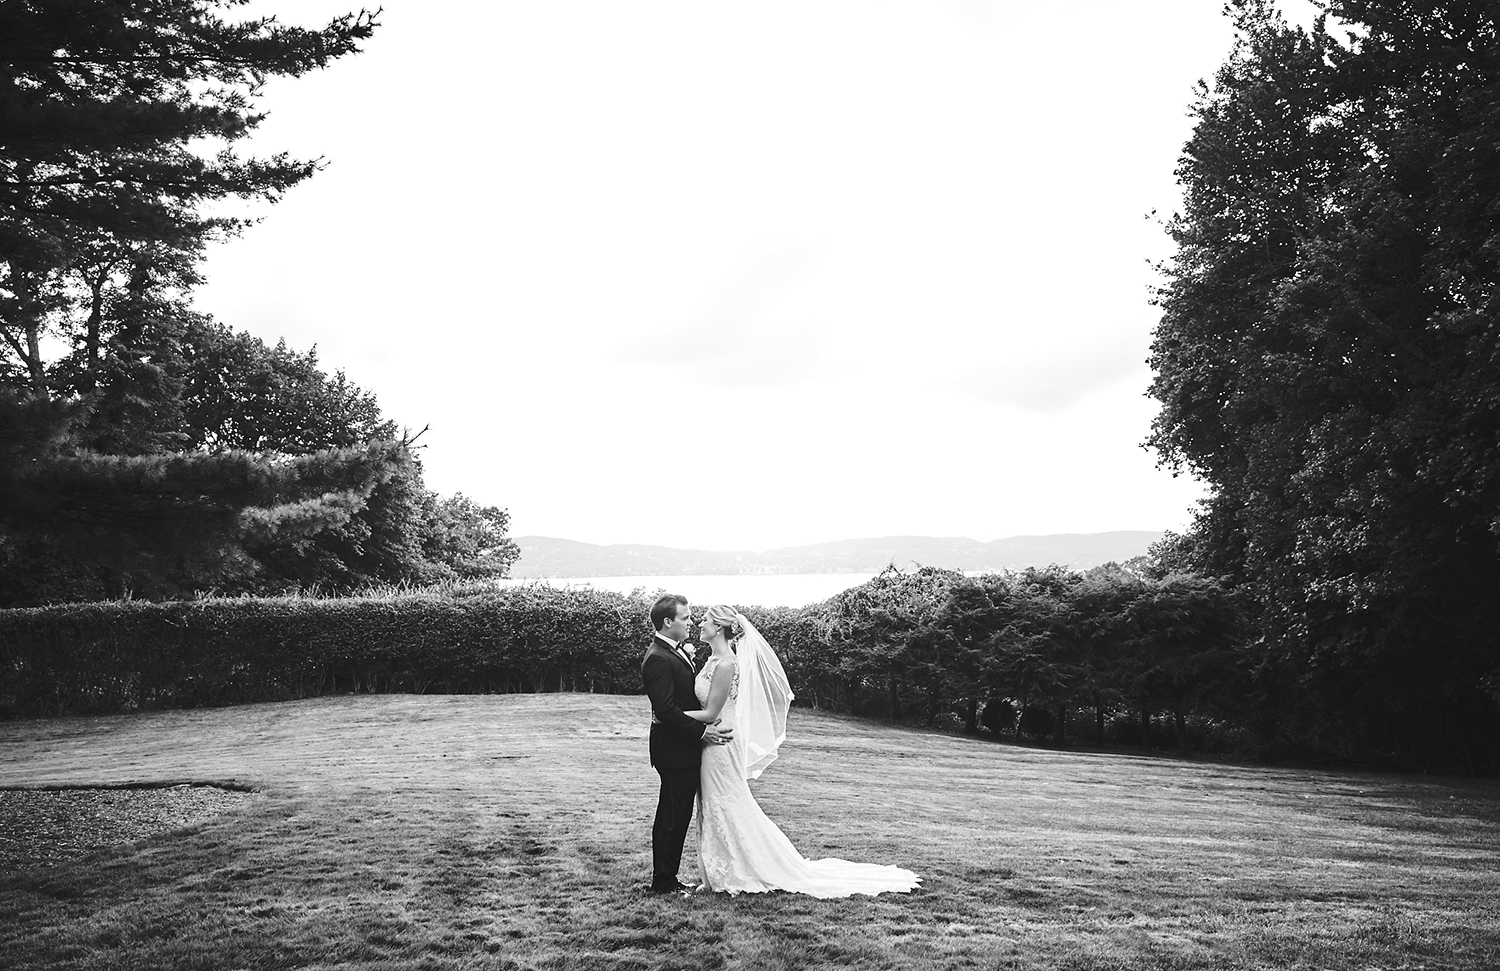 170804_TappanHillMansionWeddingPhotography_NYWeddingPhotographerBy_BriJohnsonWeddings_0156.jpg